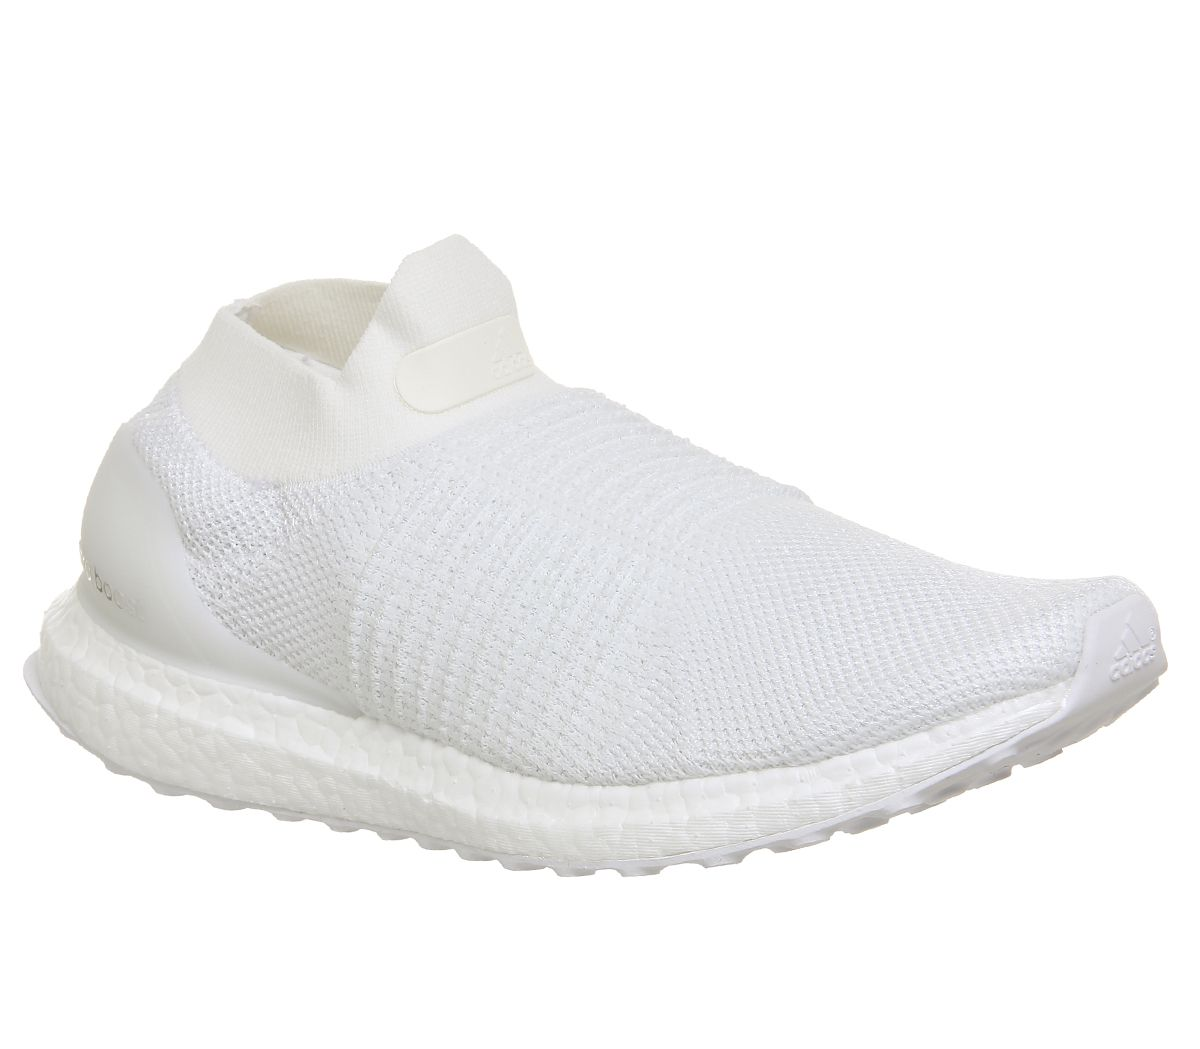 6d6440612 adidas Ultraboost Ultra Boost Laceless White - His trainers